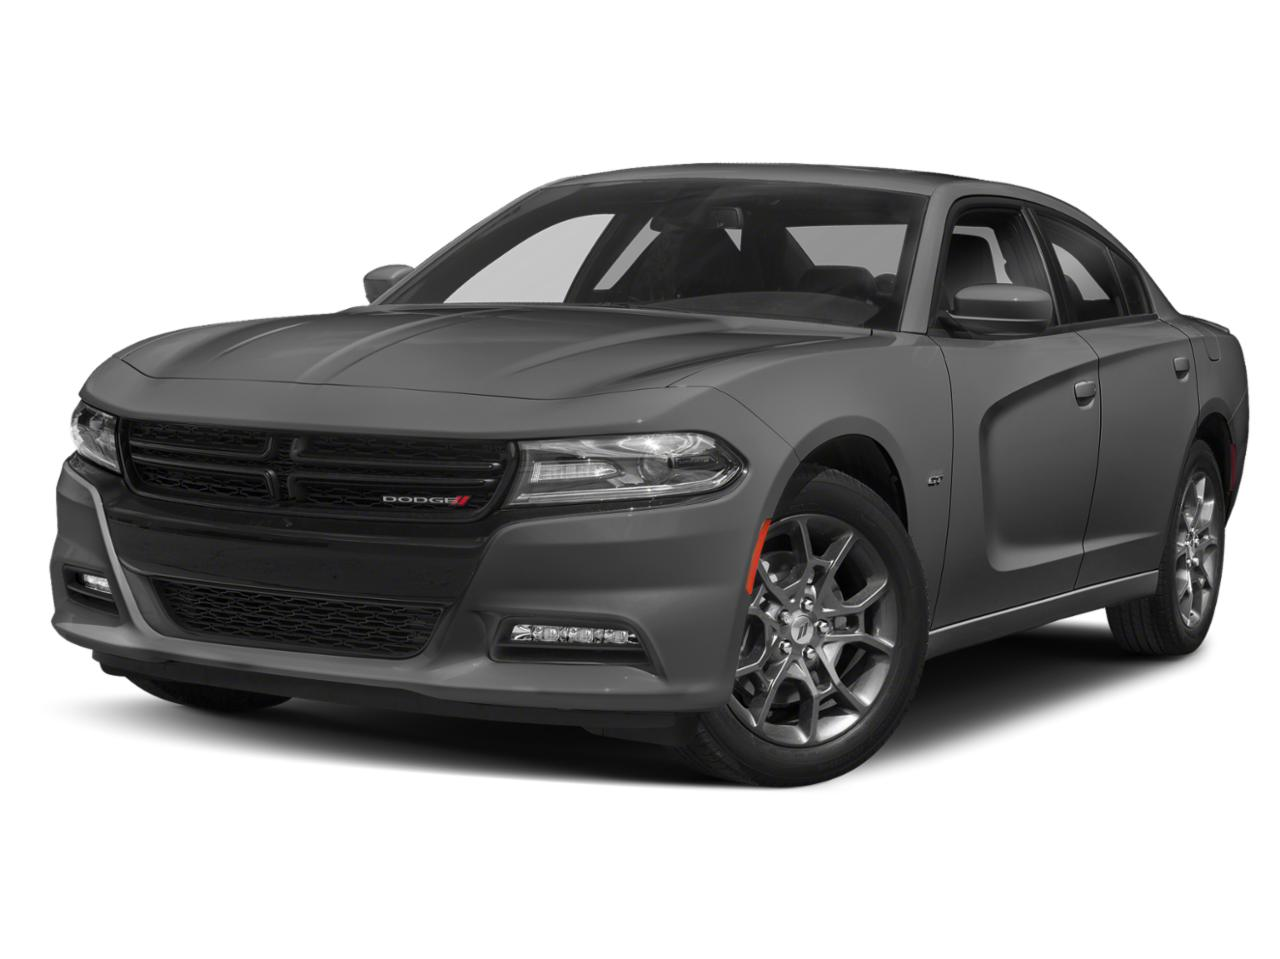 2018 Dodge Charger Vehicle Photo in Medina, OH 44256